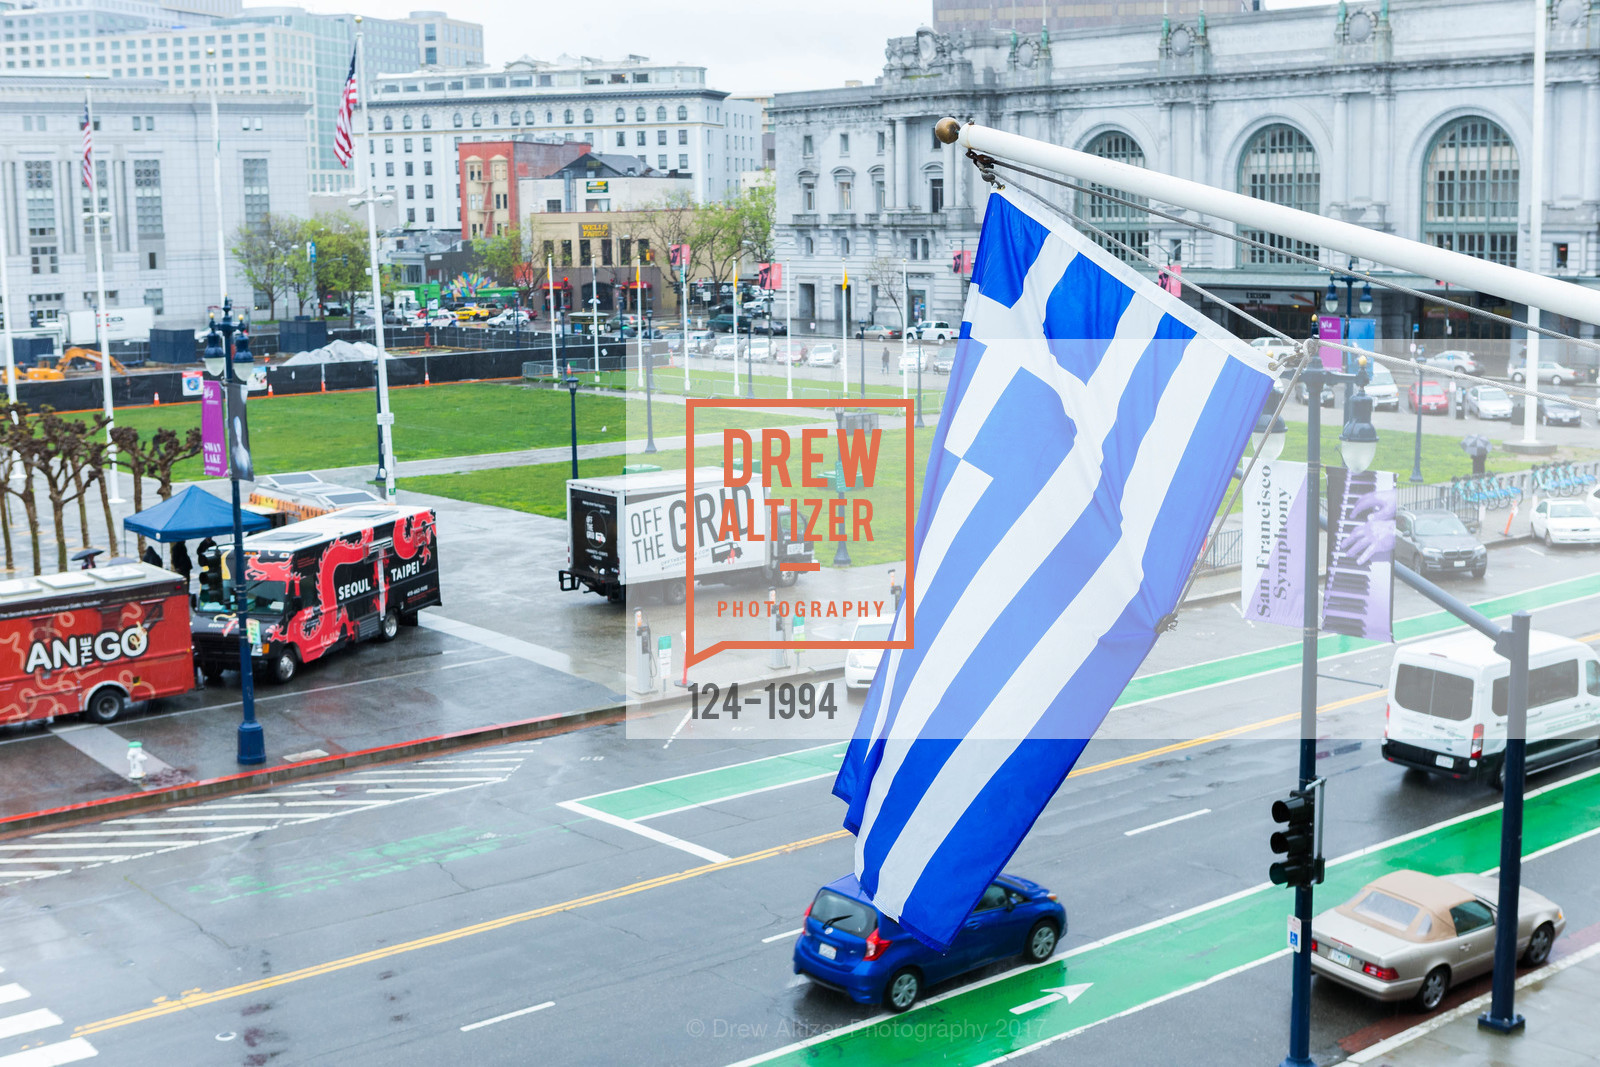 Atmosphere, Greek Independence Day Official Greek Flag Raising Ceremony, City Hall. 1 Dr Carlton B Goodlett Pl, March 24th, 2017